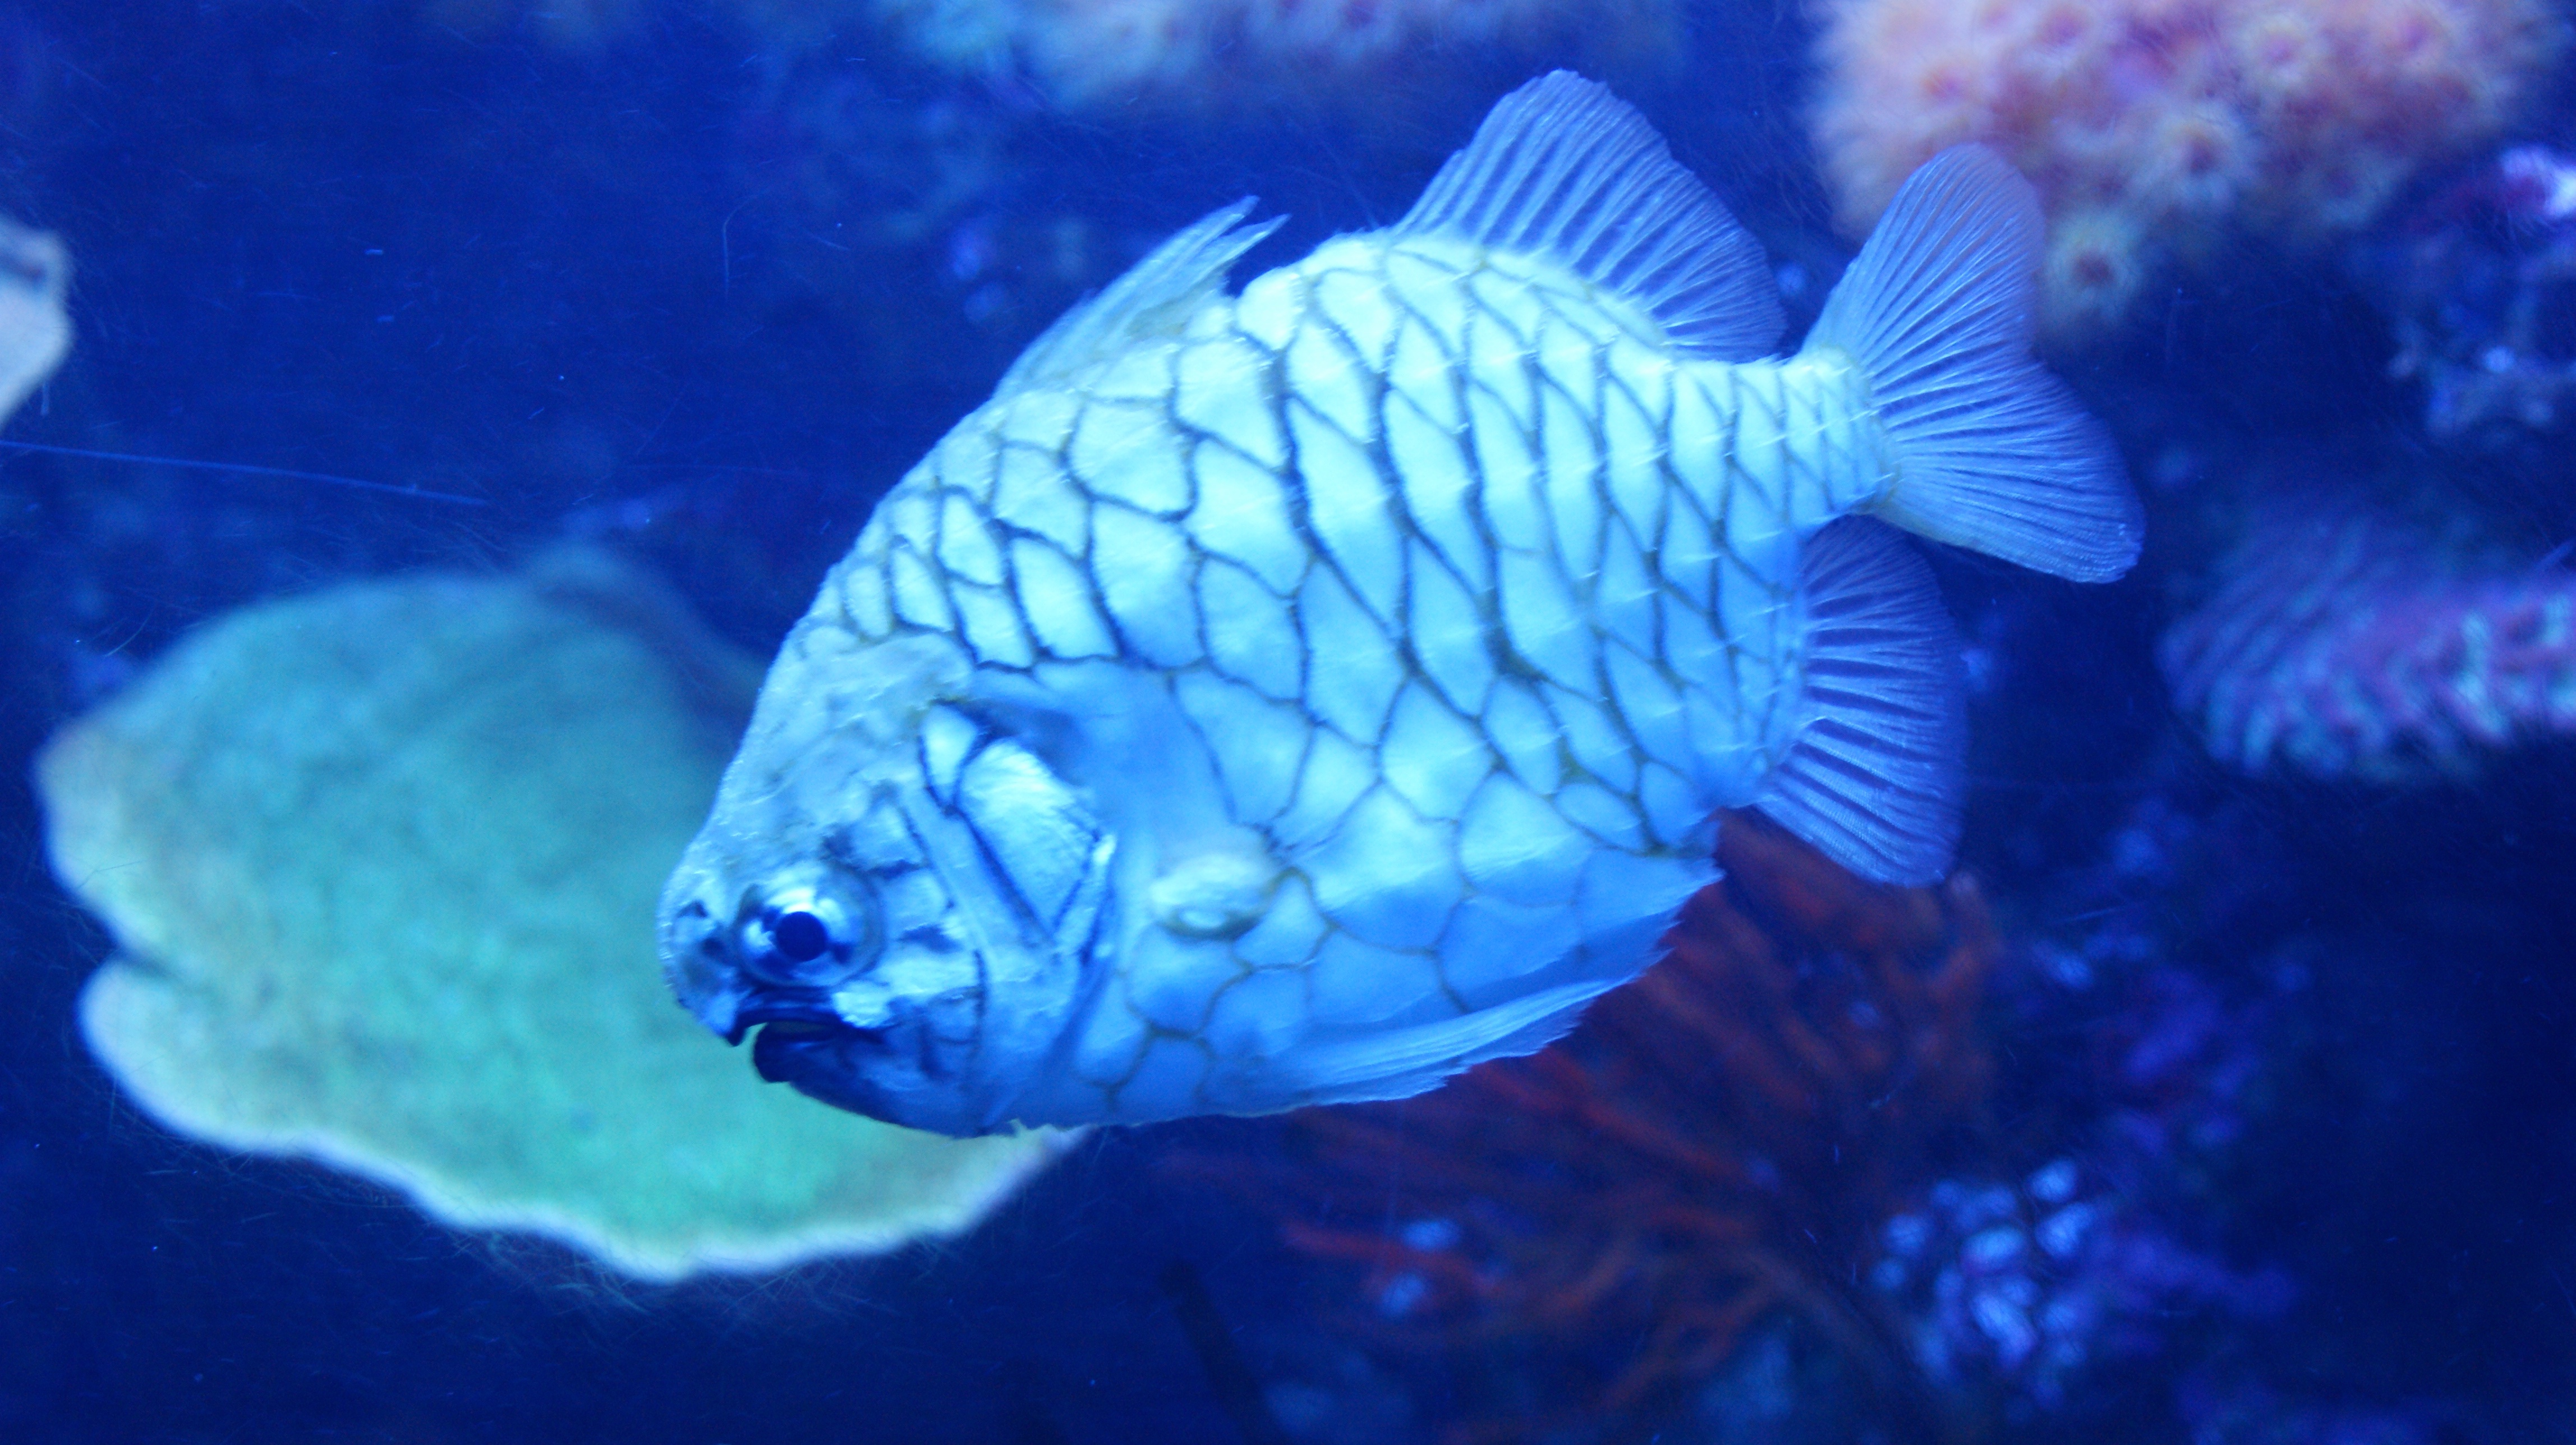 Friday morning photograph open thread fish and for Urine smells like fish after eating fish